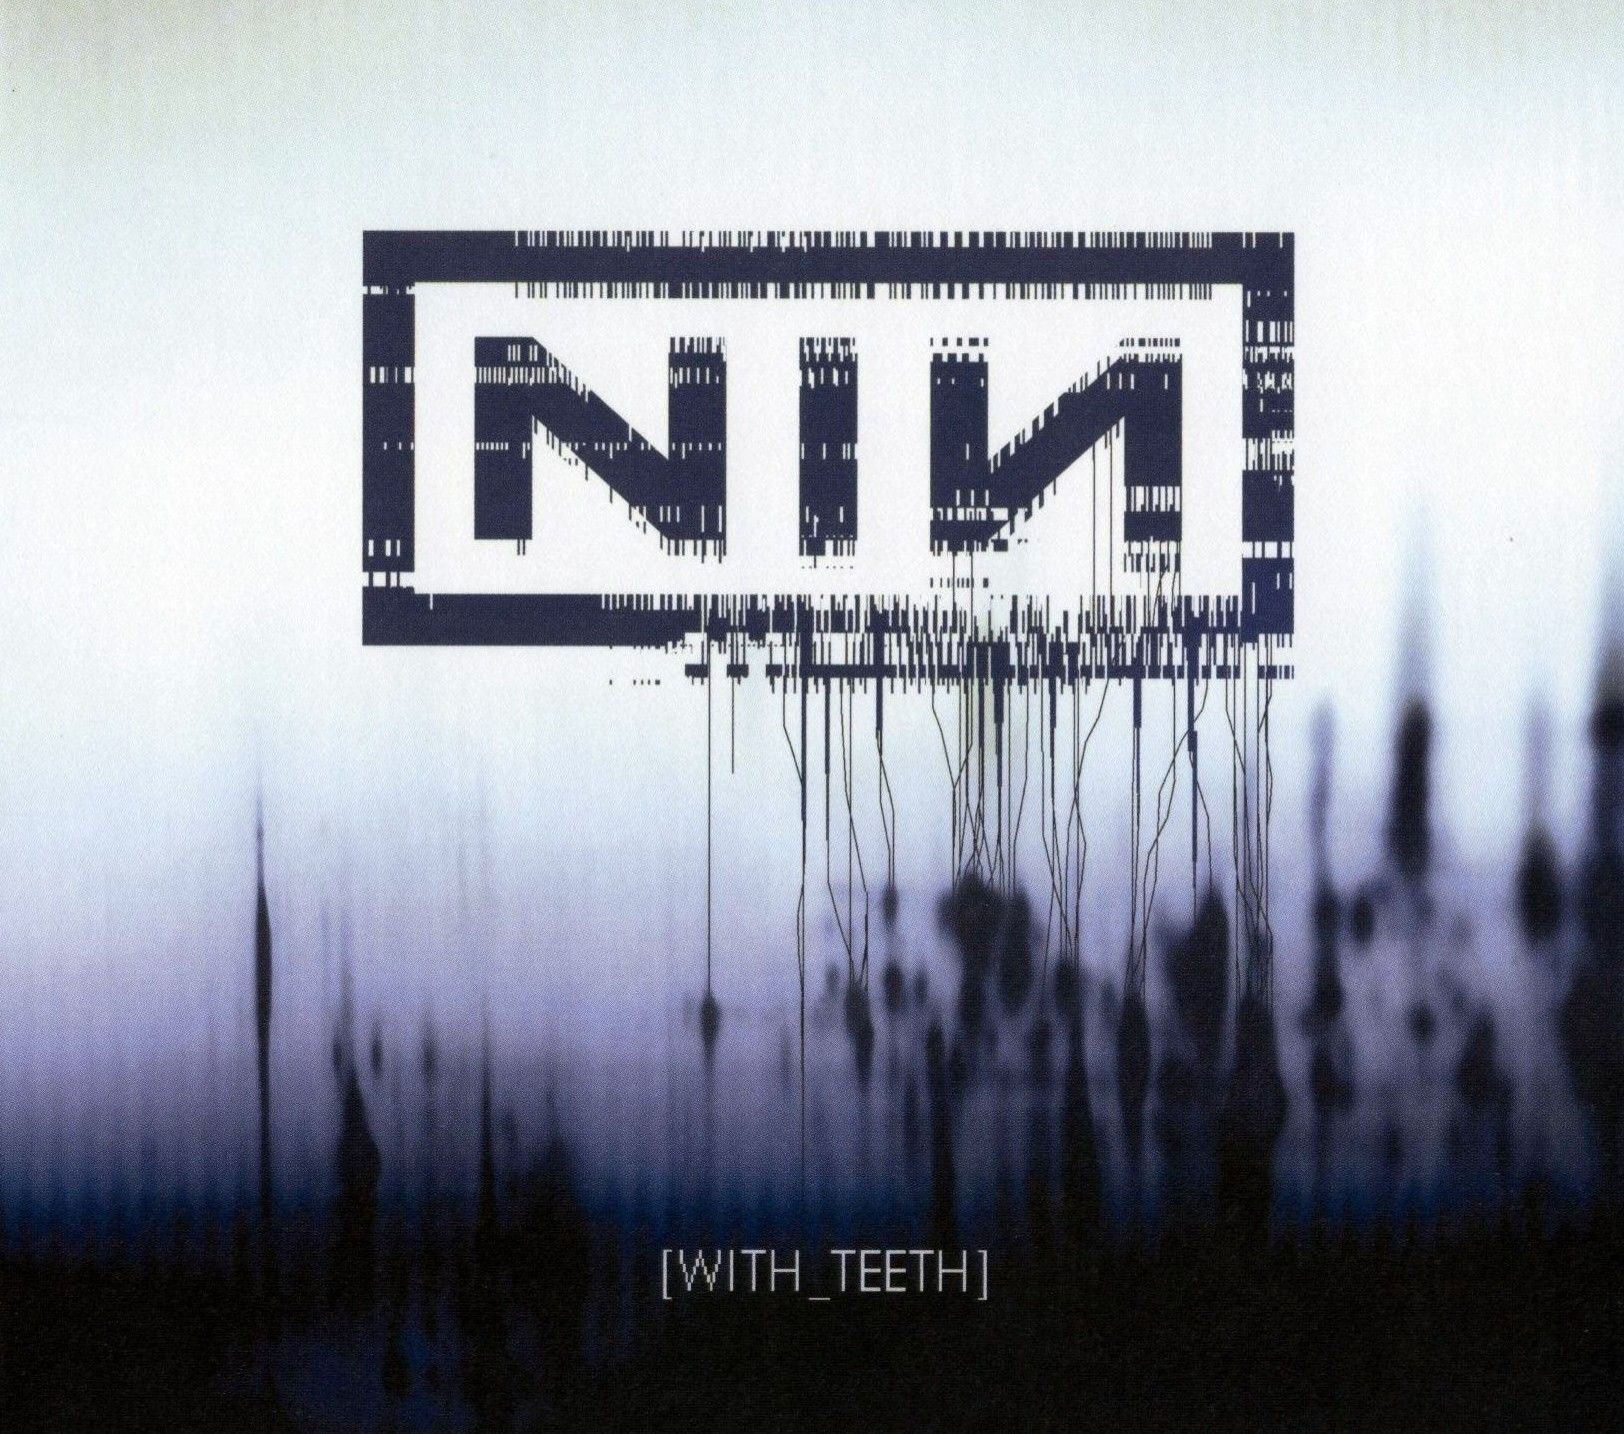 Nine Inch Nails - With Teeth album cover